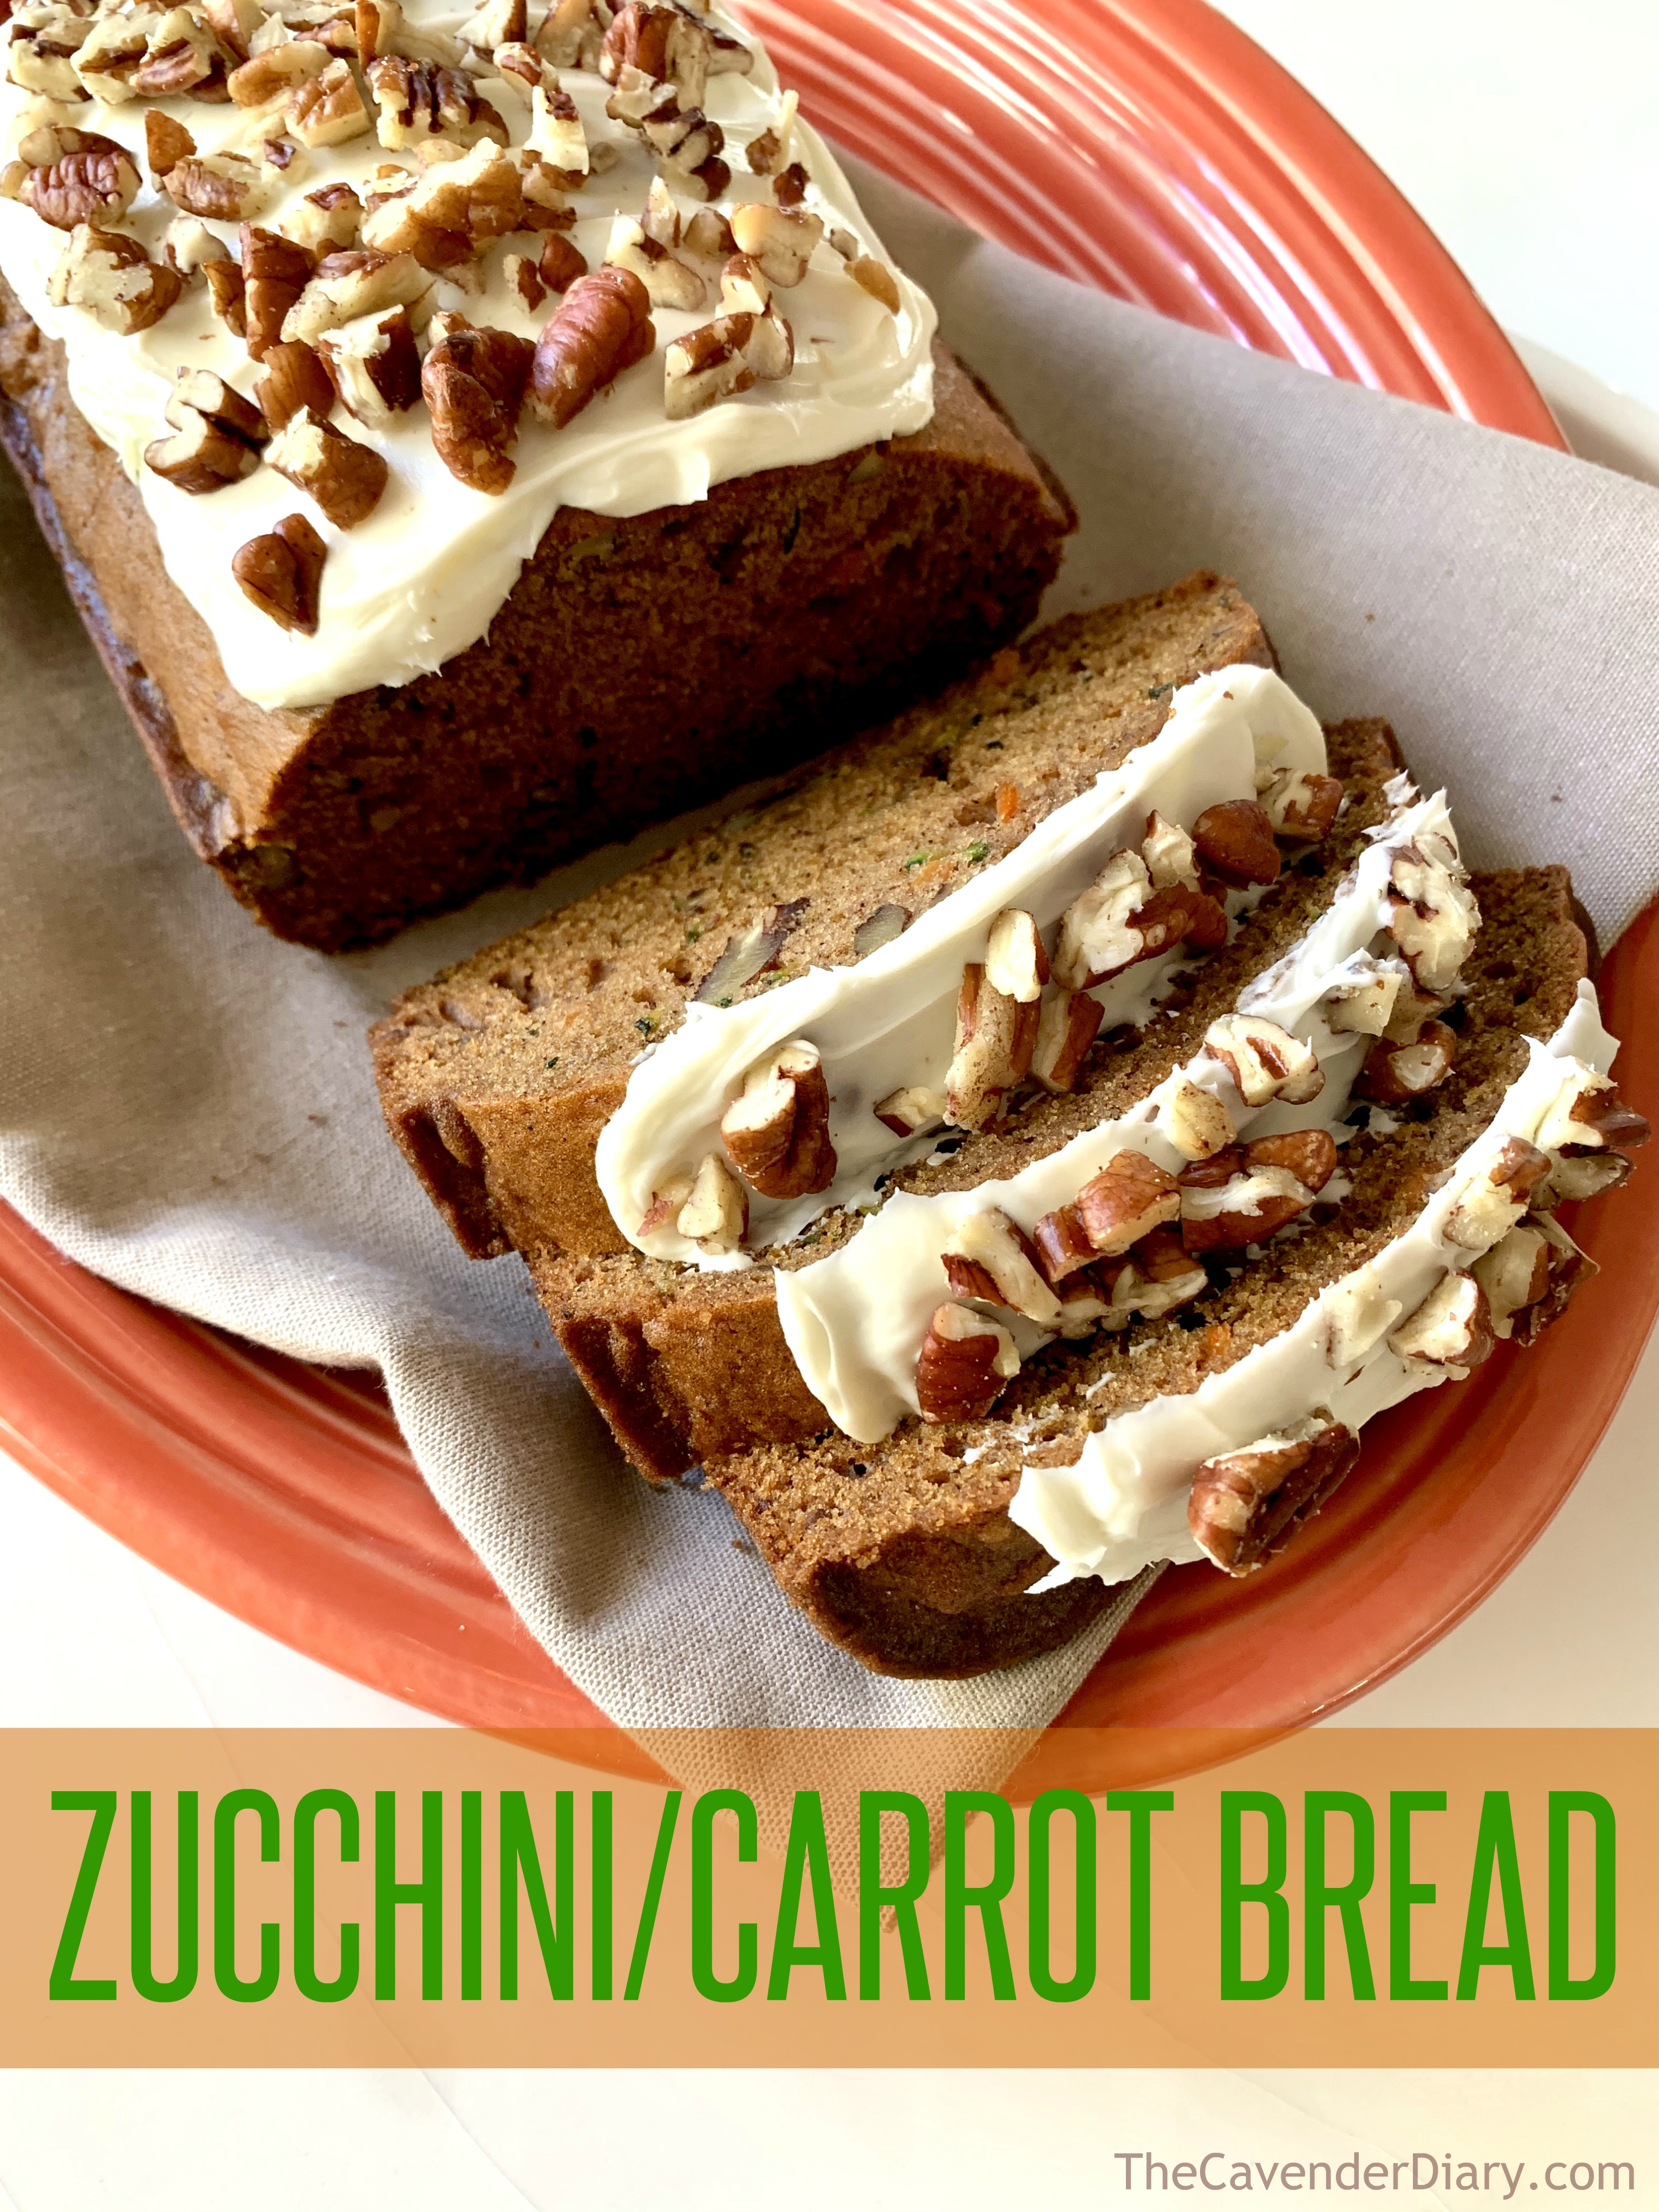 Zucchini Carrot Bread from the Cavender Diary Boys